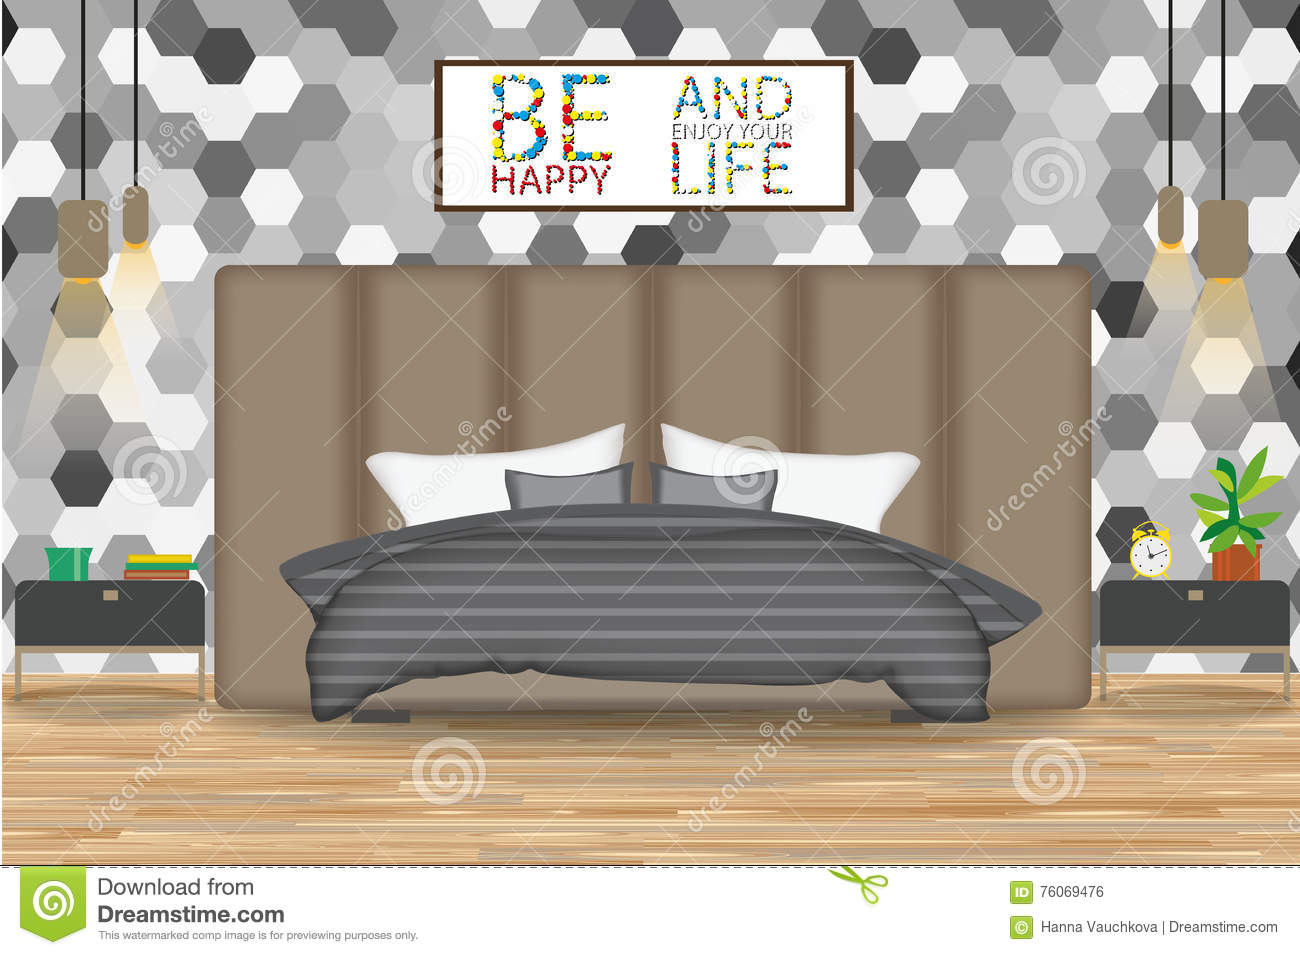 Loft style interior design vector illustration bed in front of wall with wallpaper side